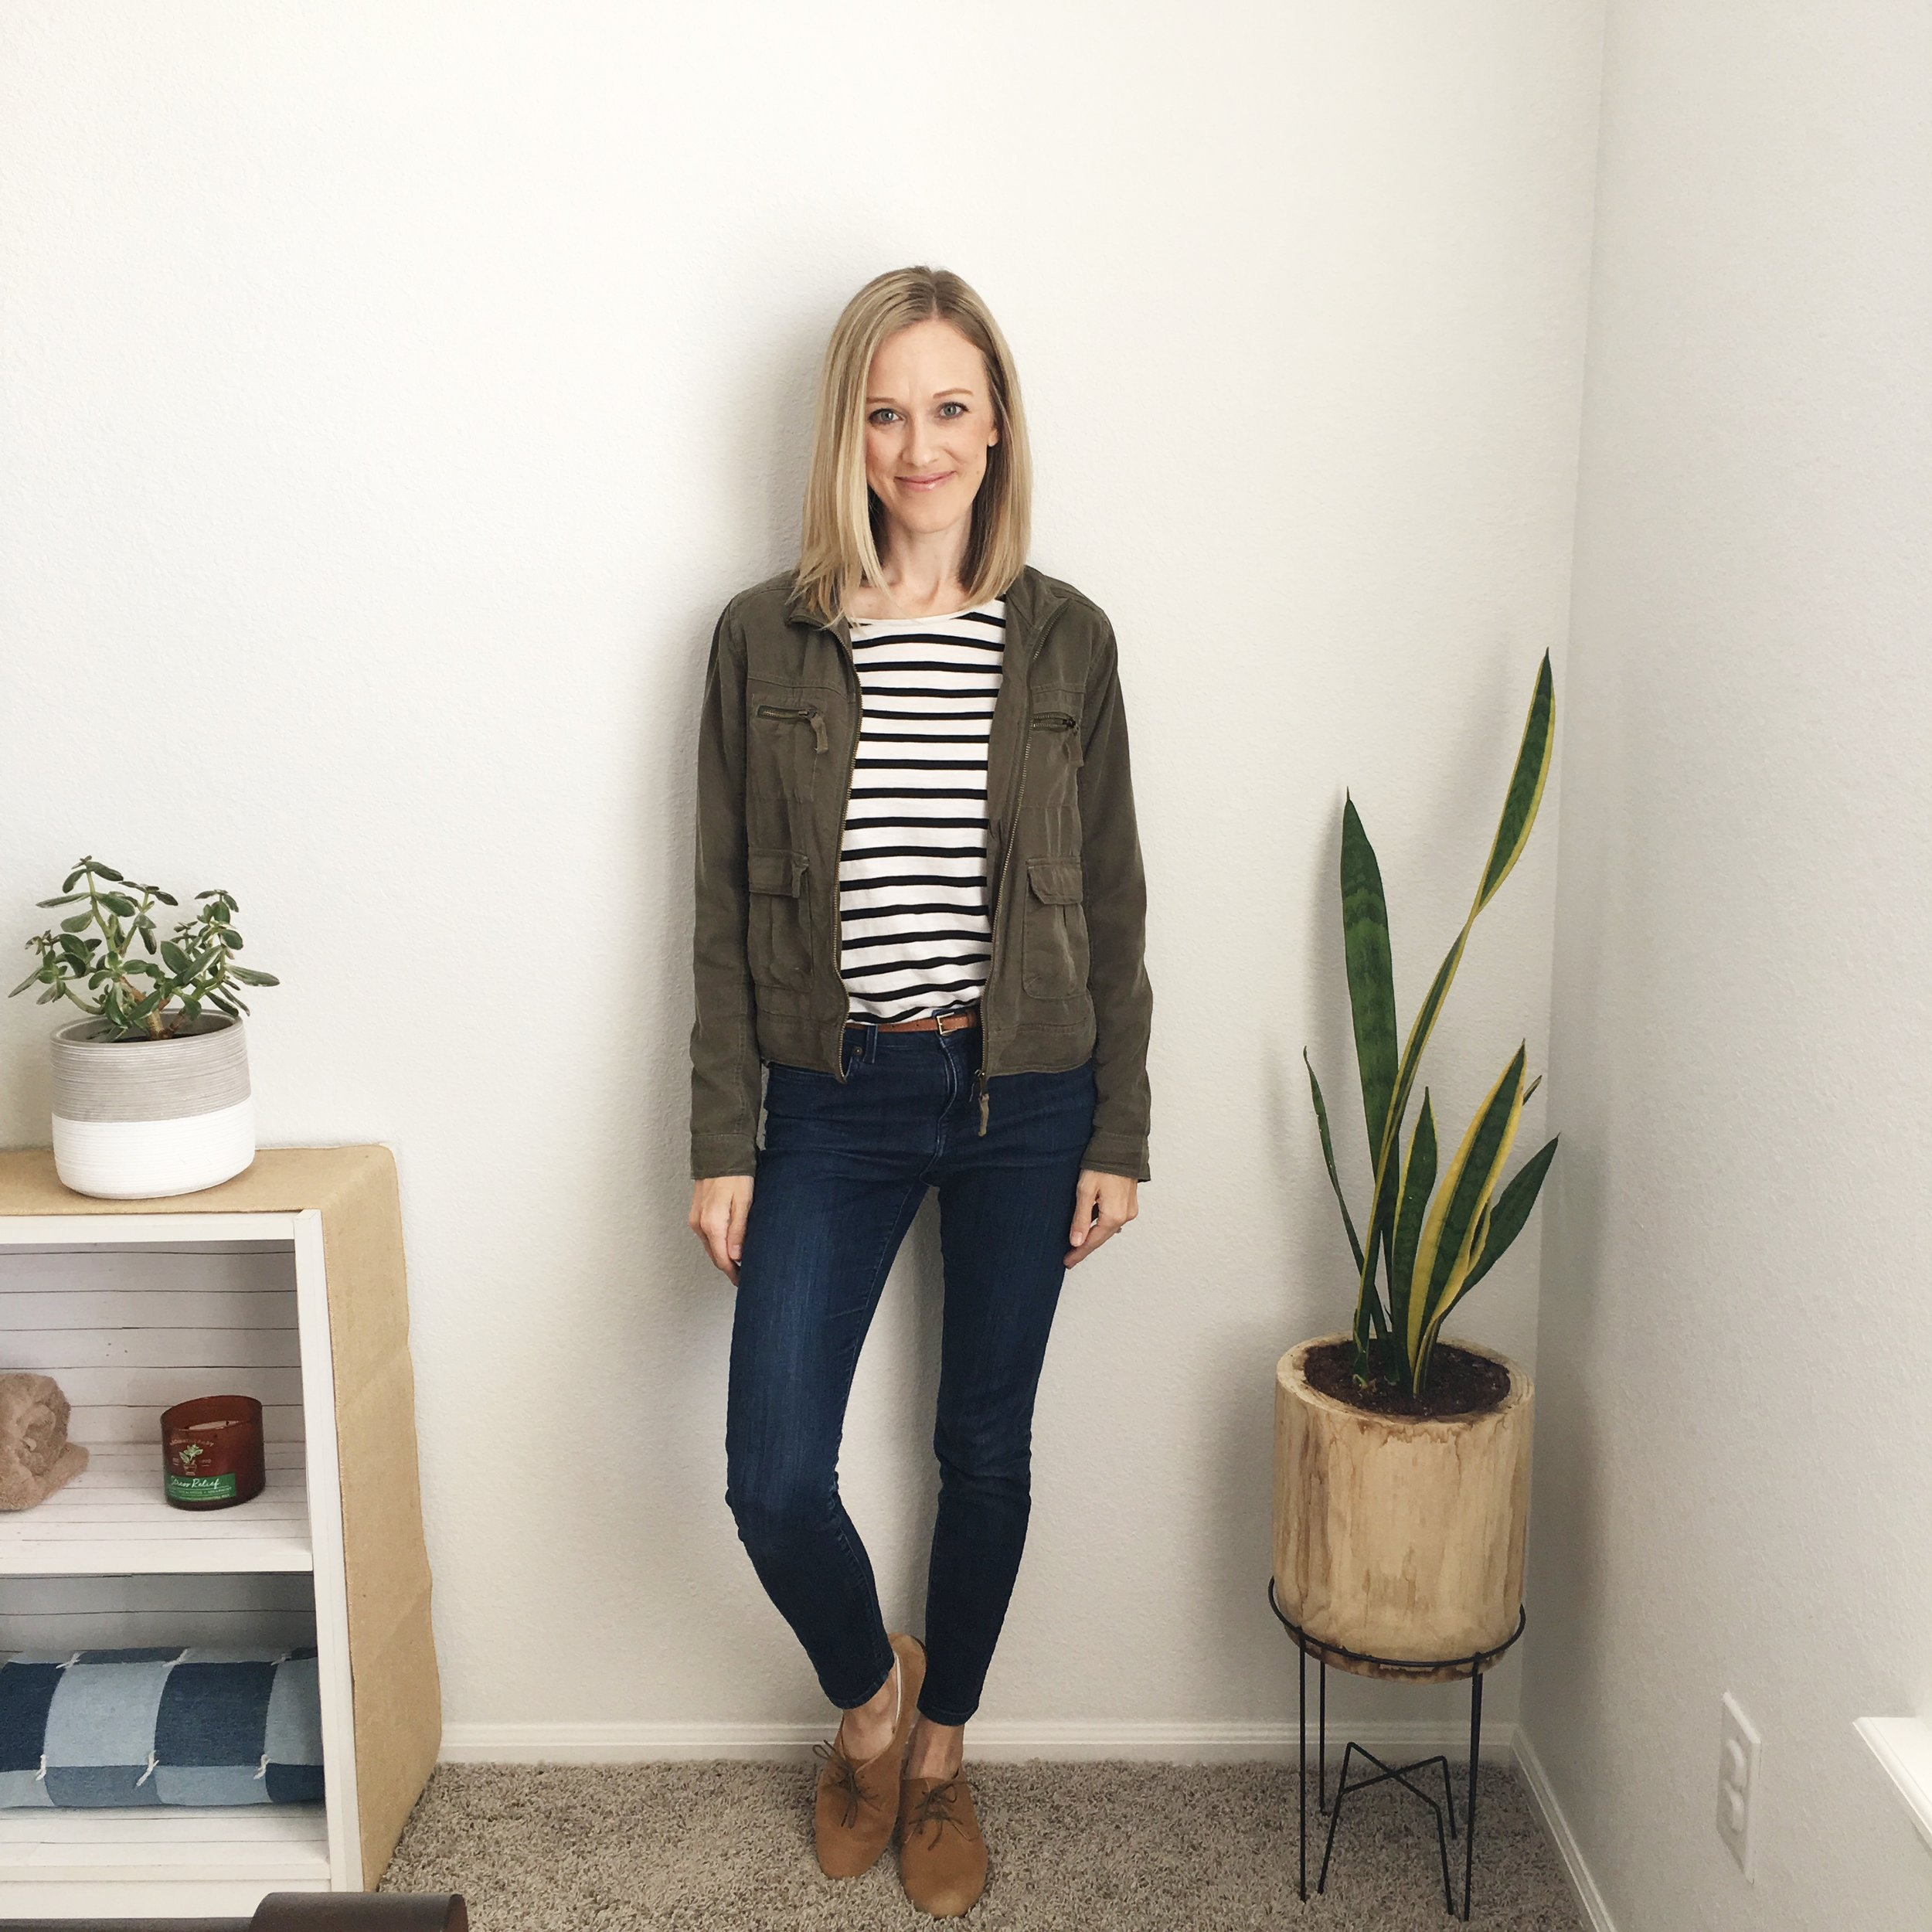 Outfit 5: 10x10 Style Challenge with ethical brands